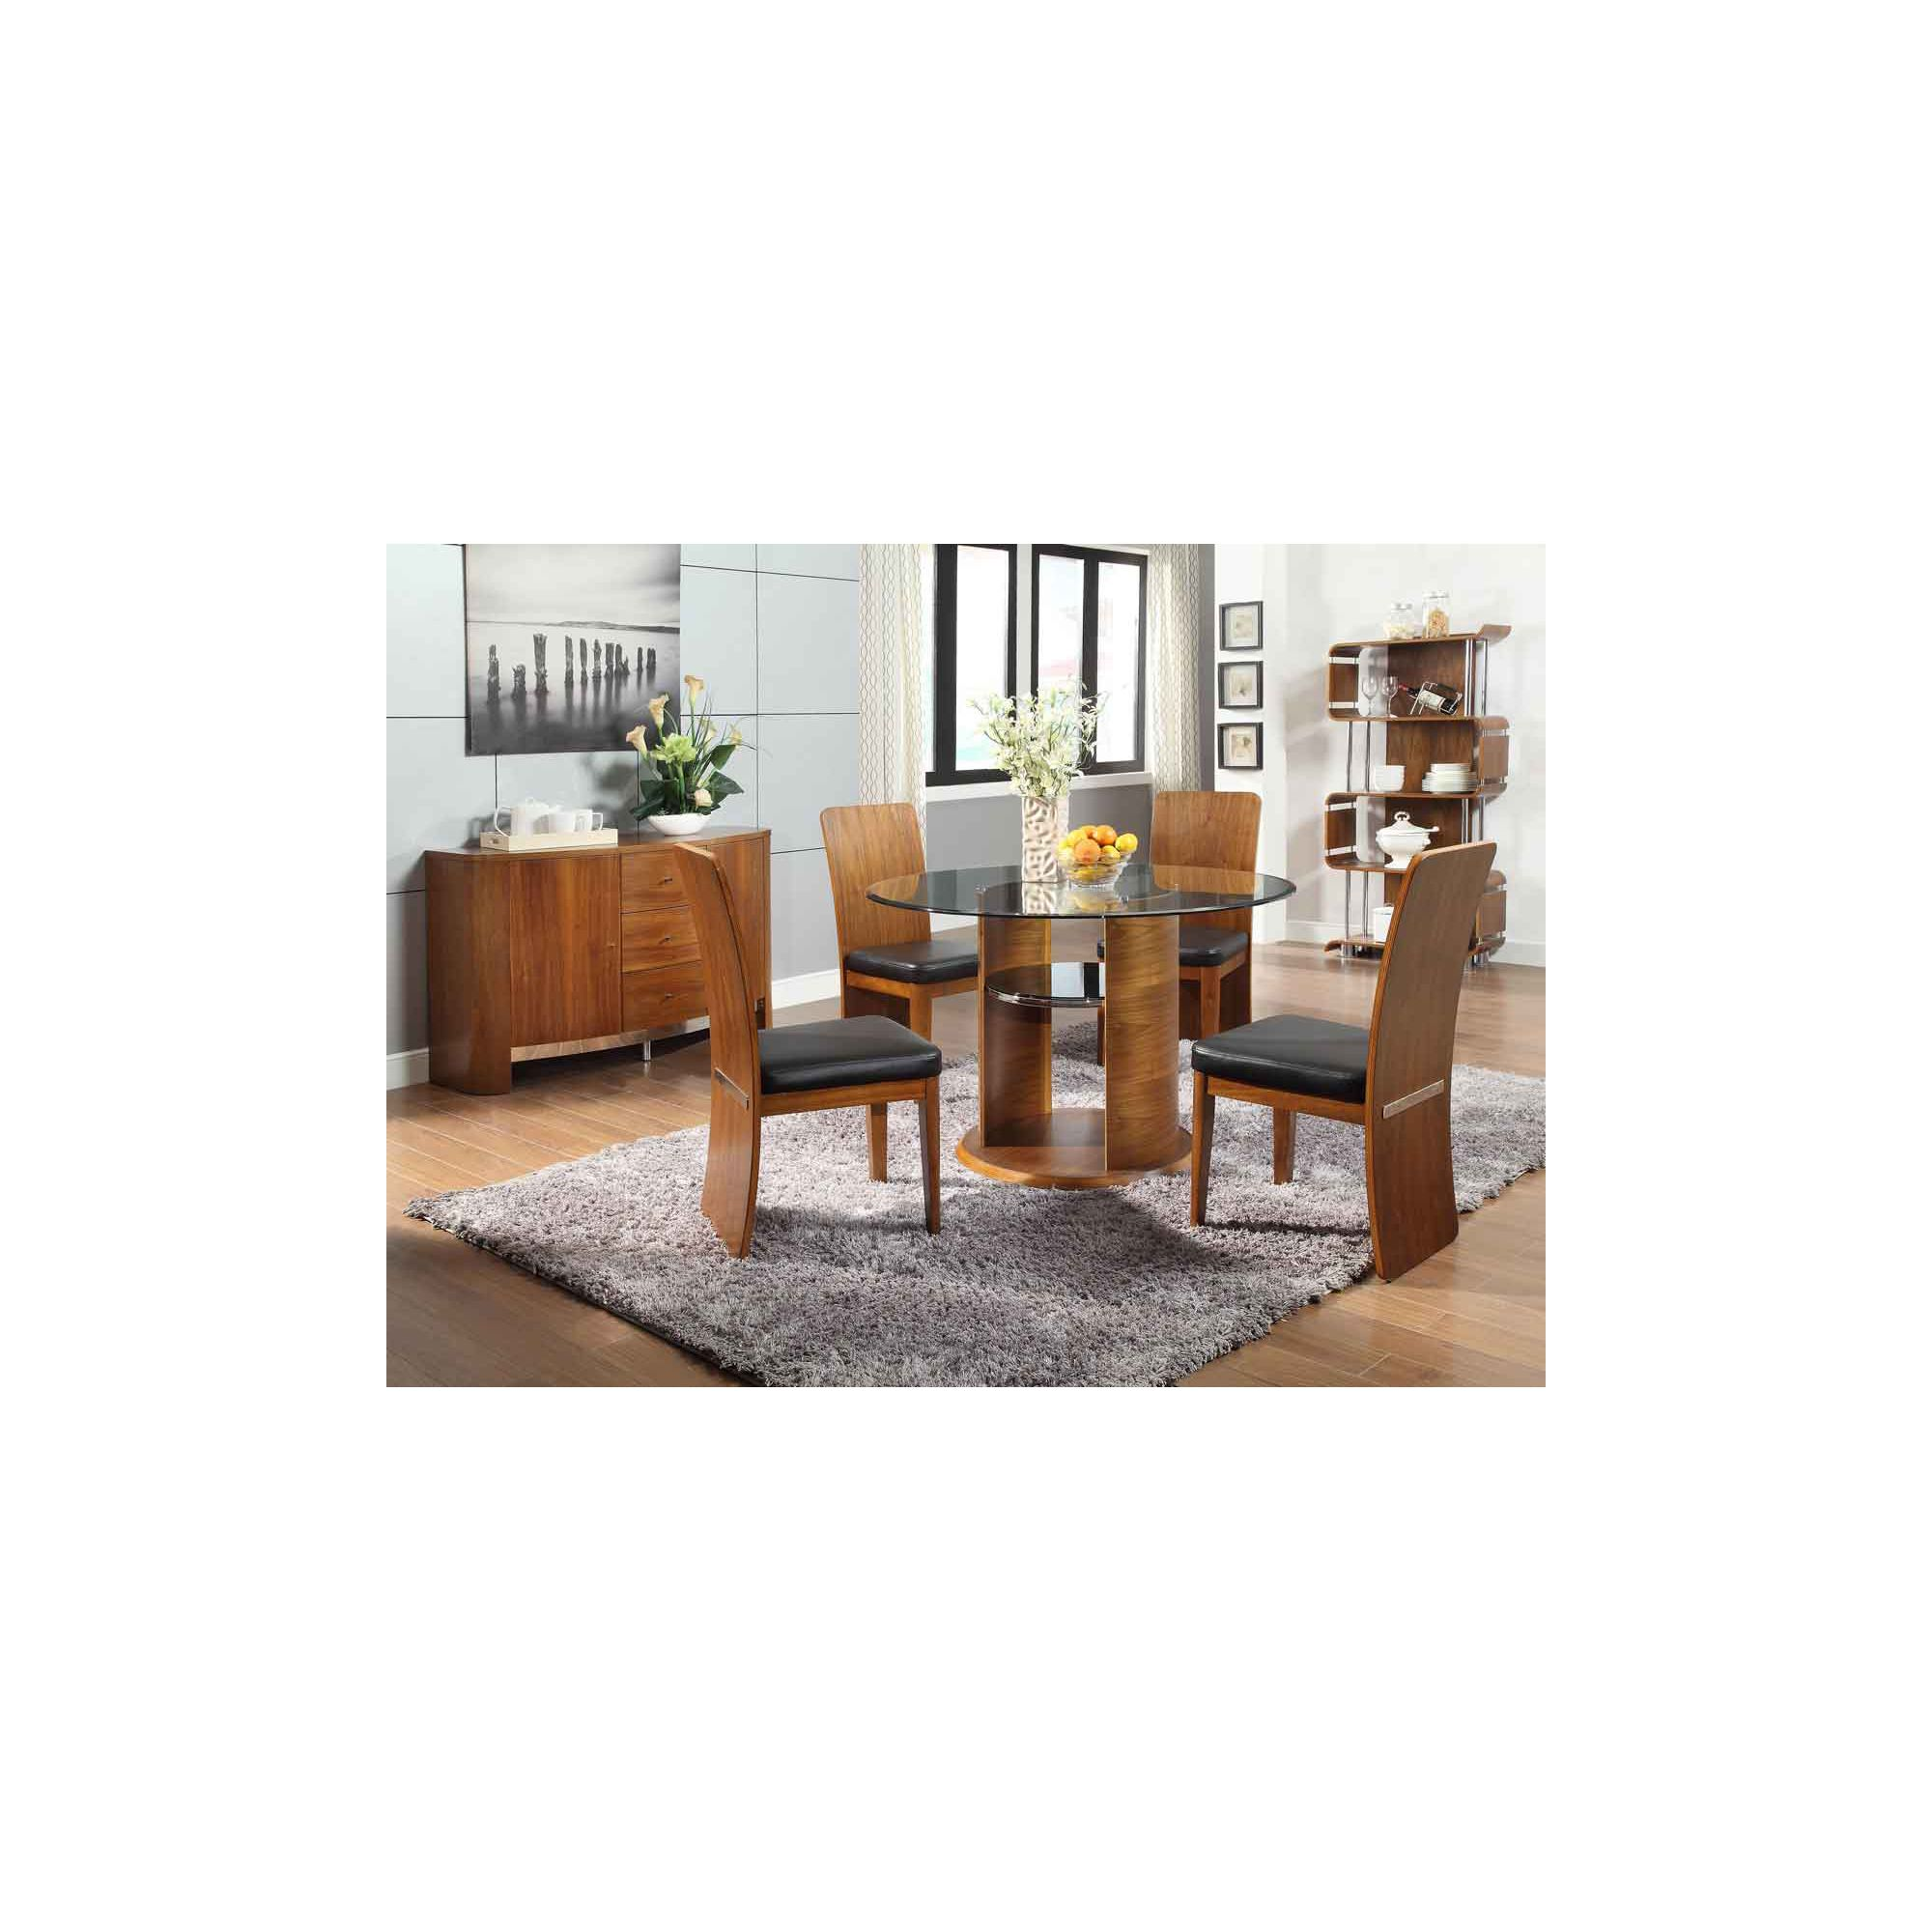 Other Jual JF603 Walnut Dining Table 4 Chairs and Sideboard